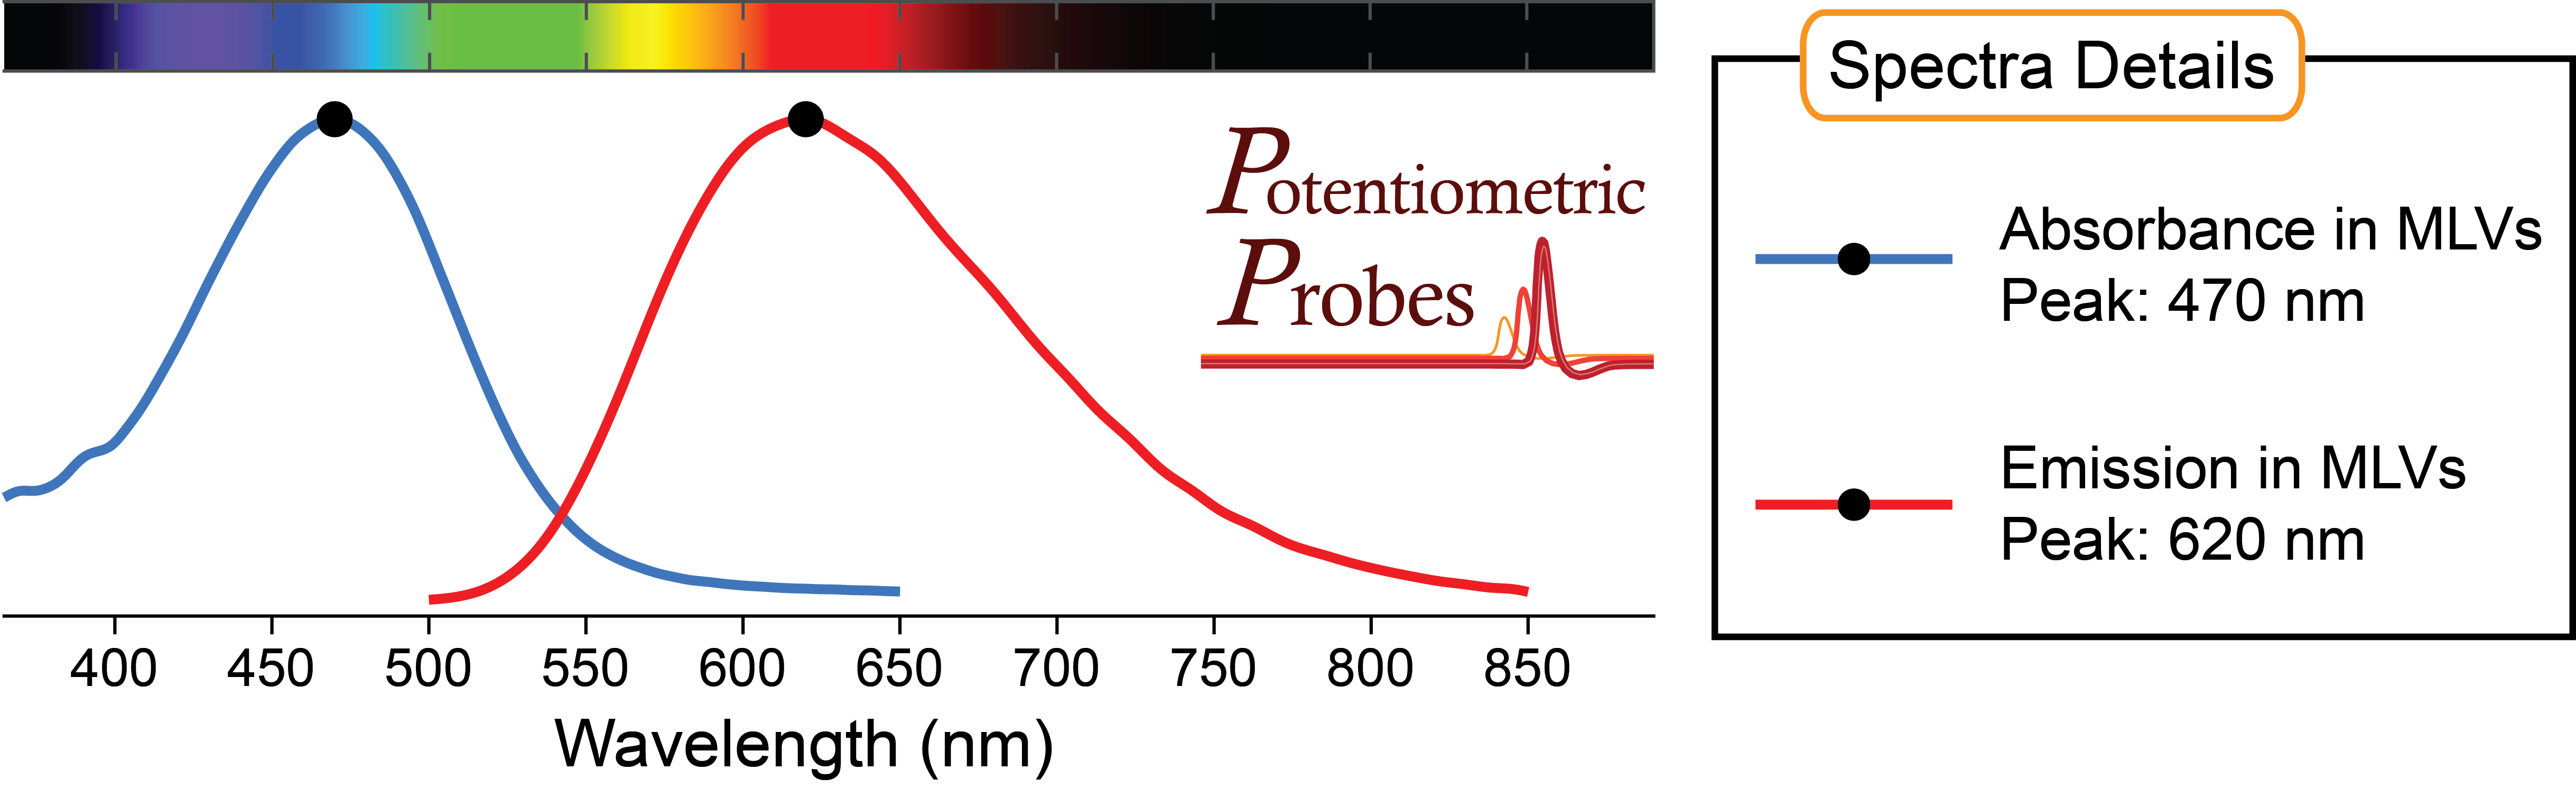 Spectra of Di-4-ANEPPS, Potentiometric Probes